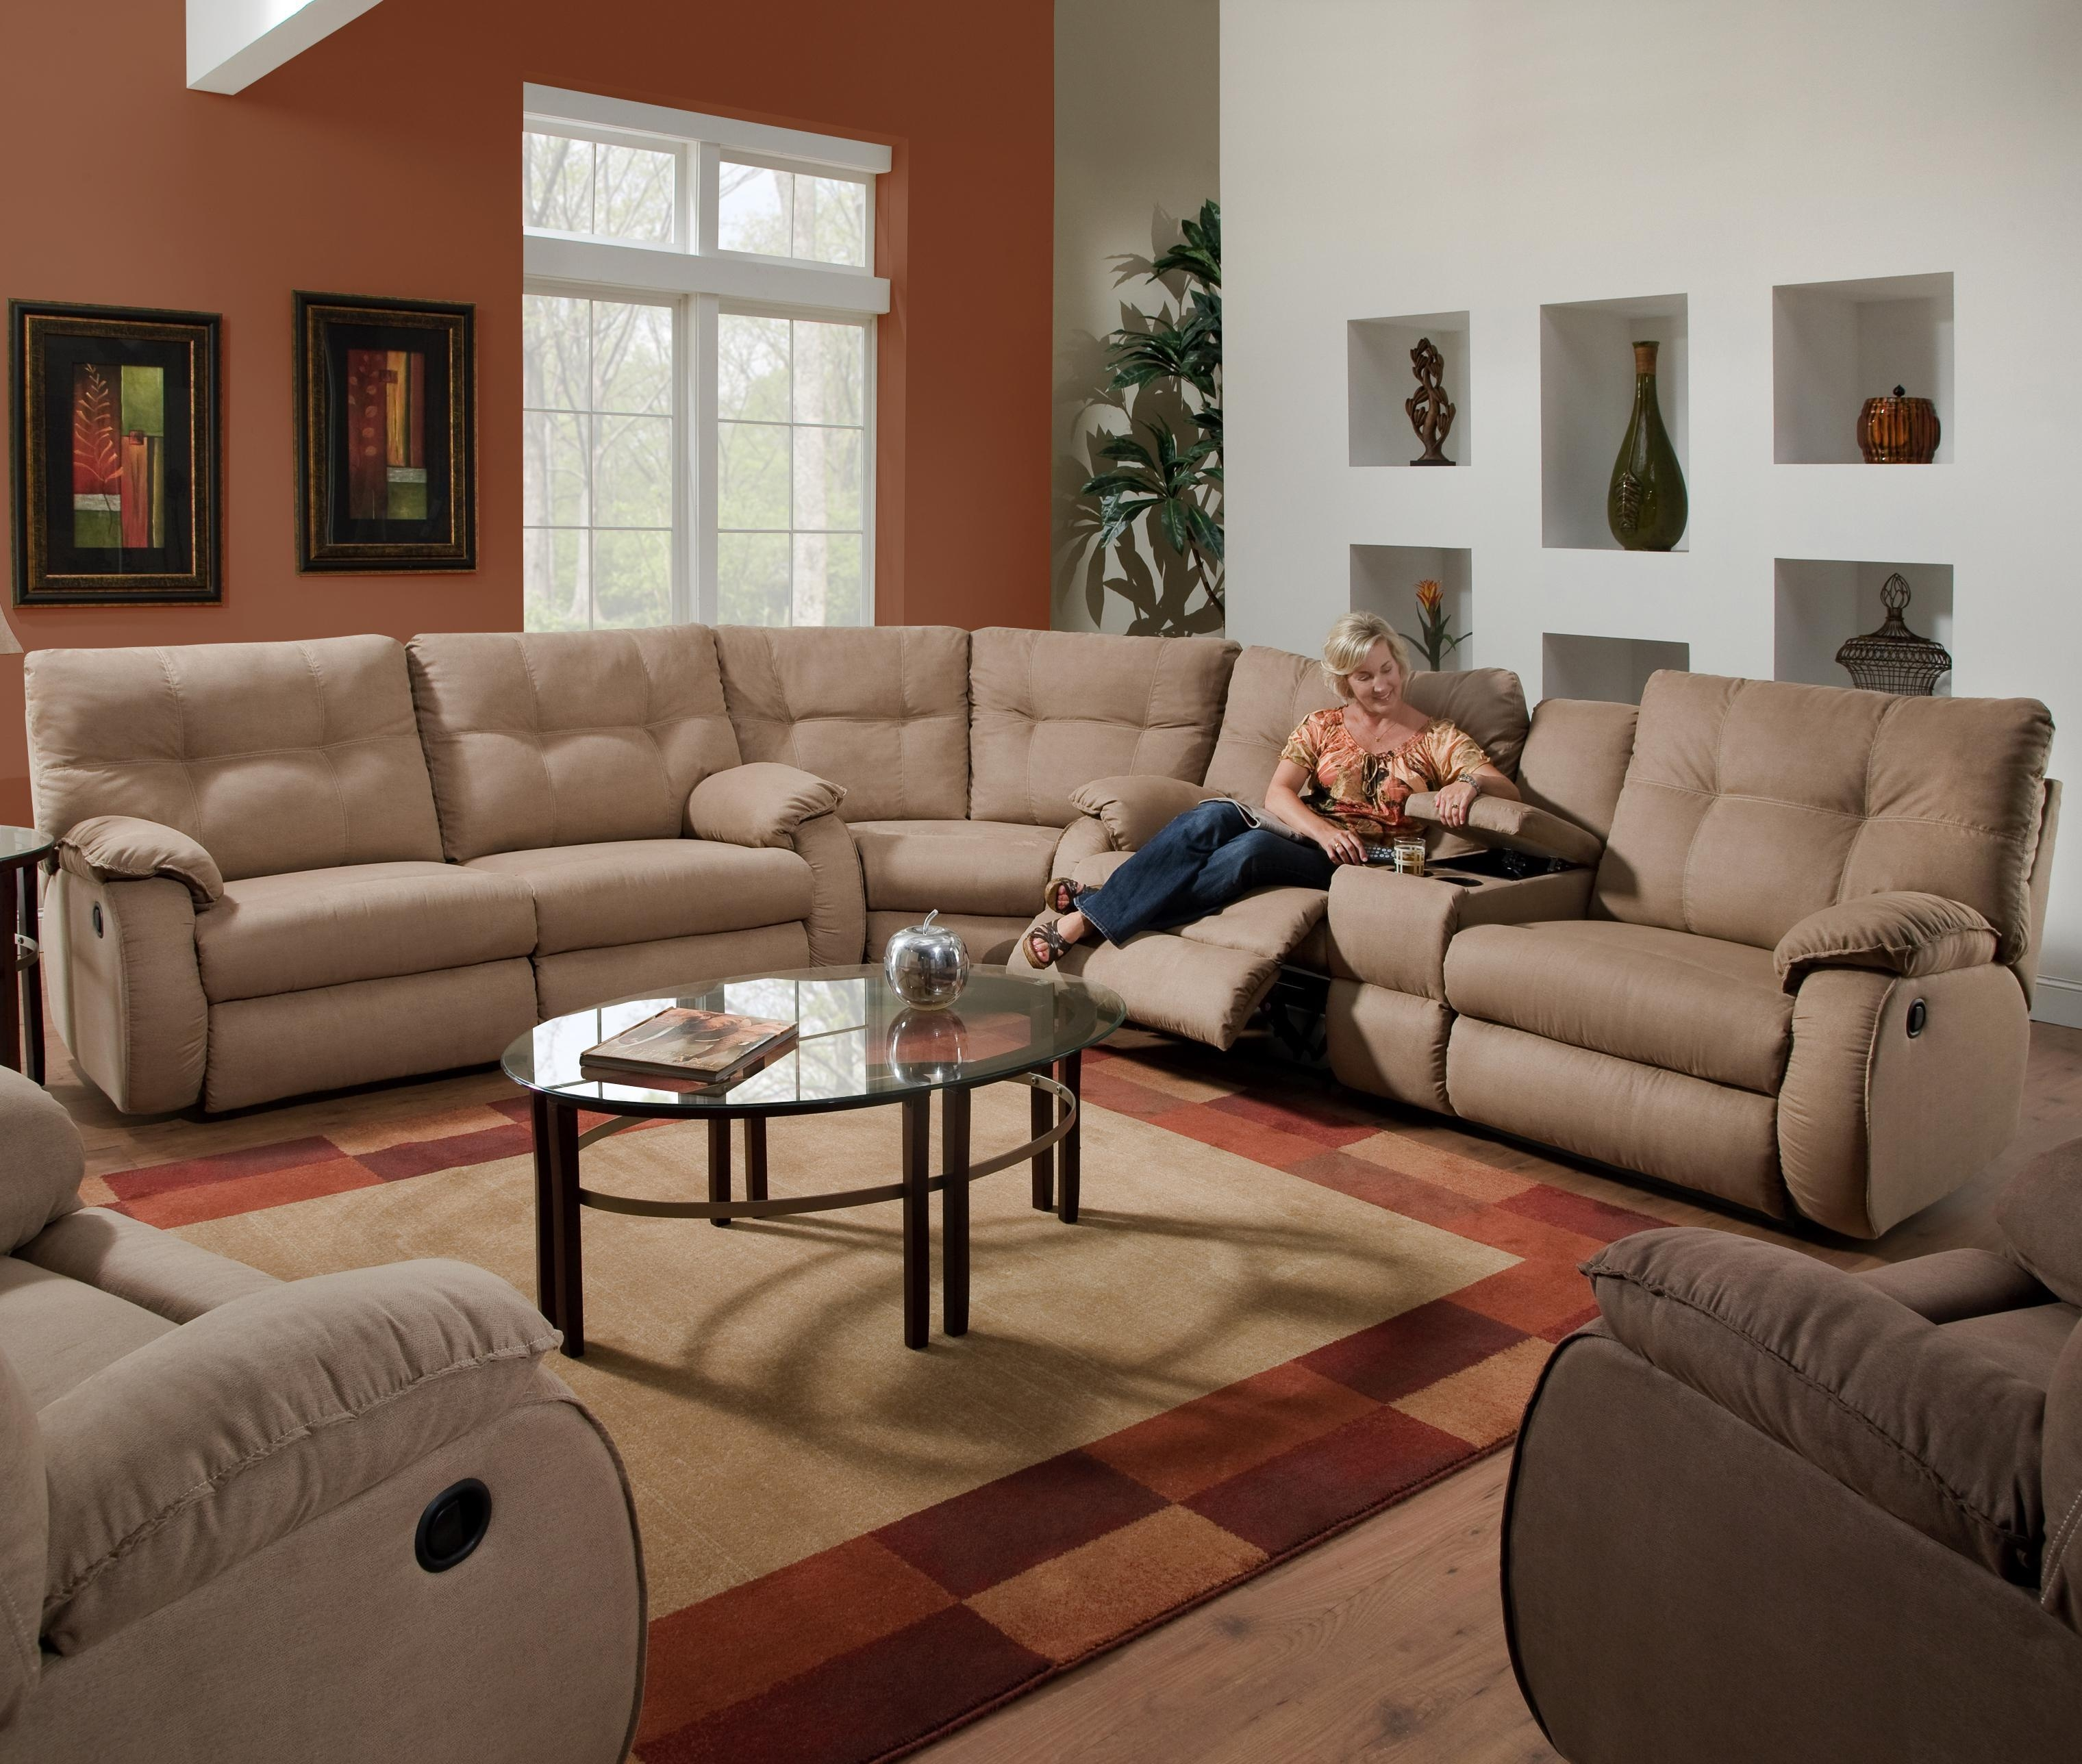 Sofas : Magnificent Fabric Reclining Sectional Sleeper Sectional Within Recliner Sectional Sofas (View 9 of 22)